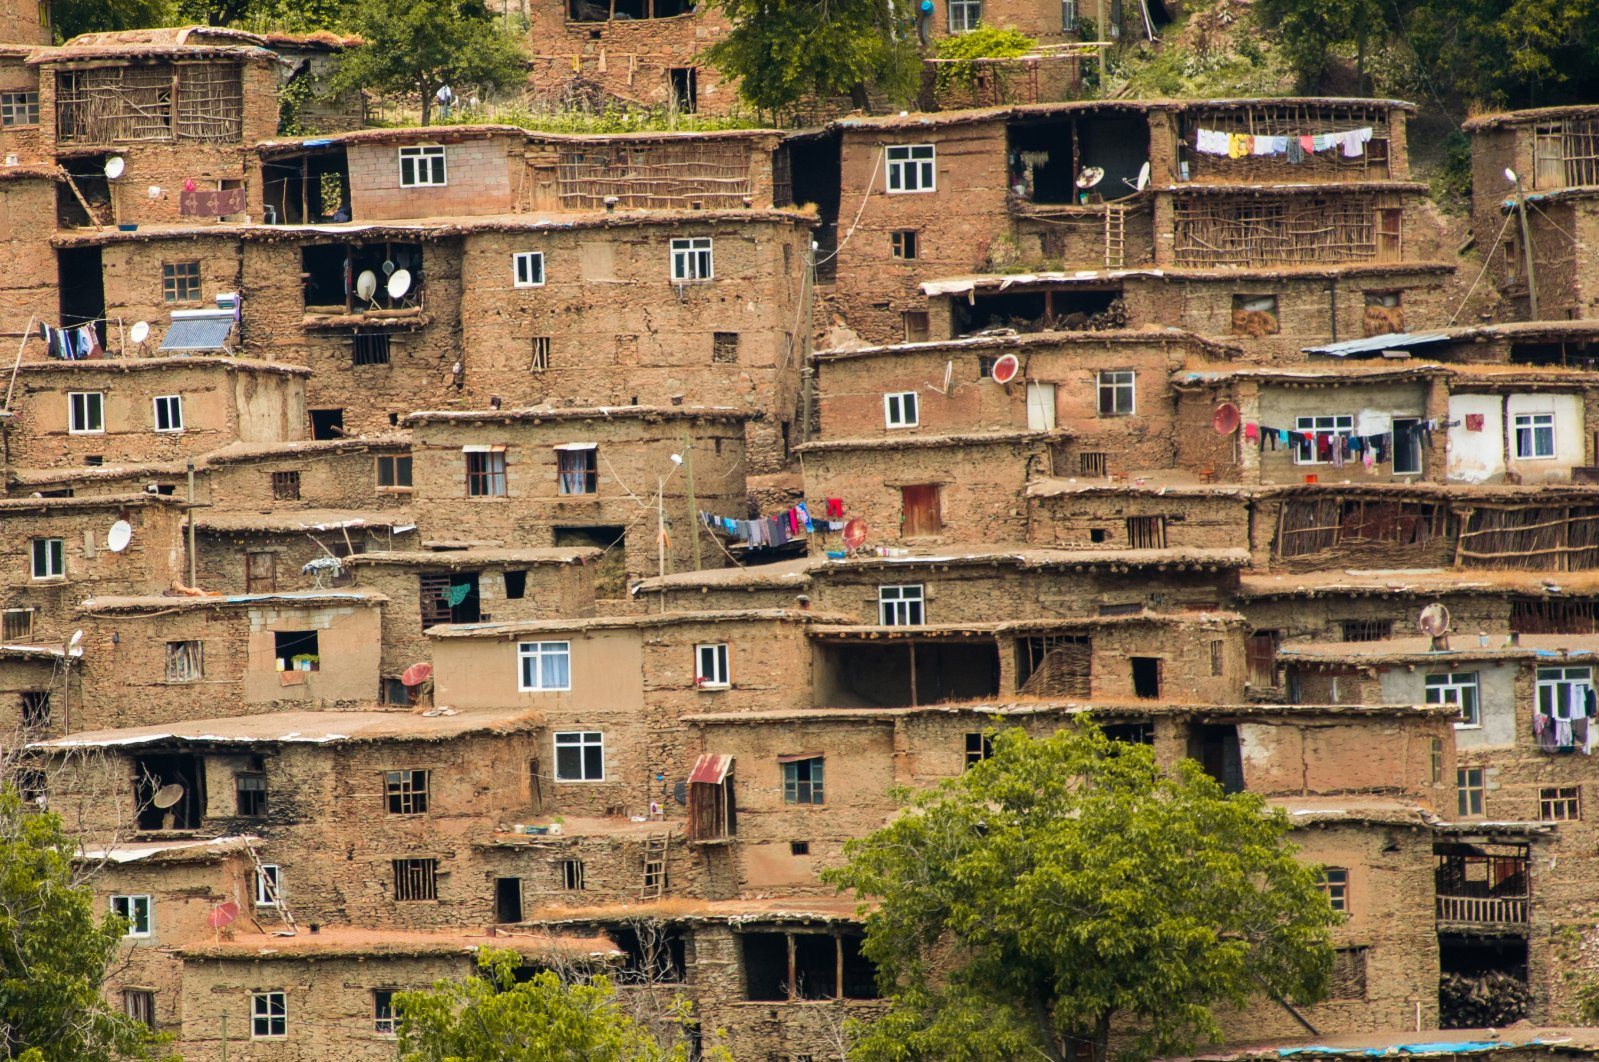 These historic 200- to 300-year-old stone houses are located in the Hizan district of eastern Turkey. (Shutterstock Photo)